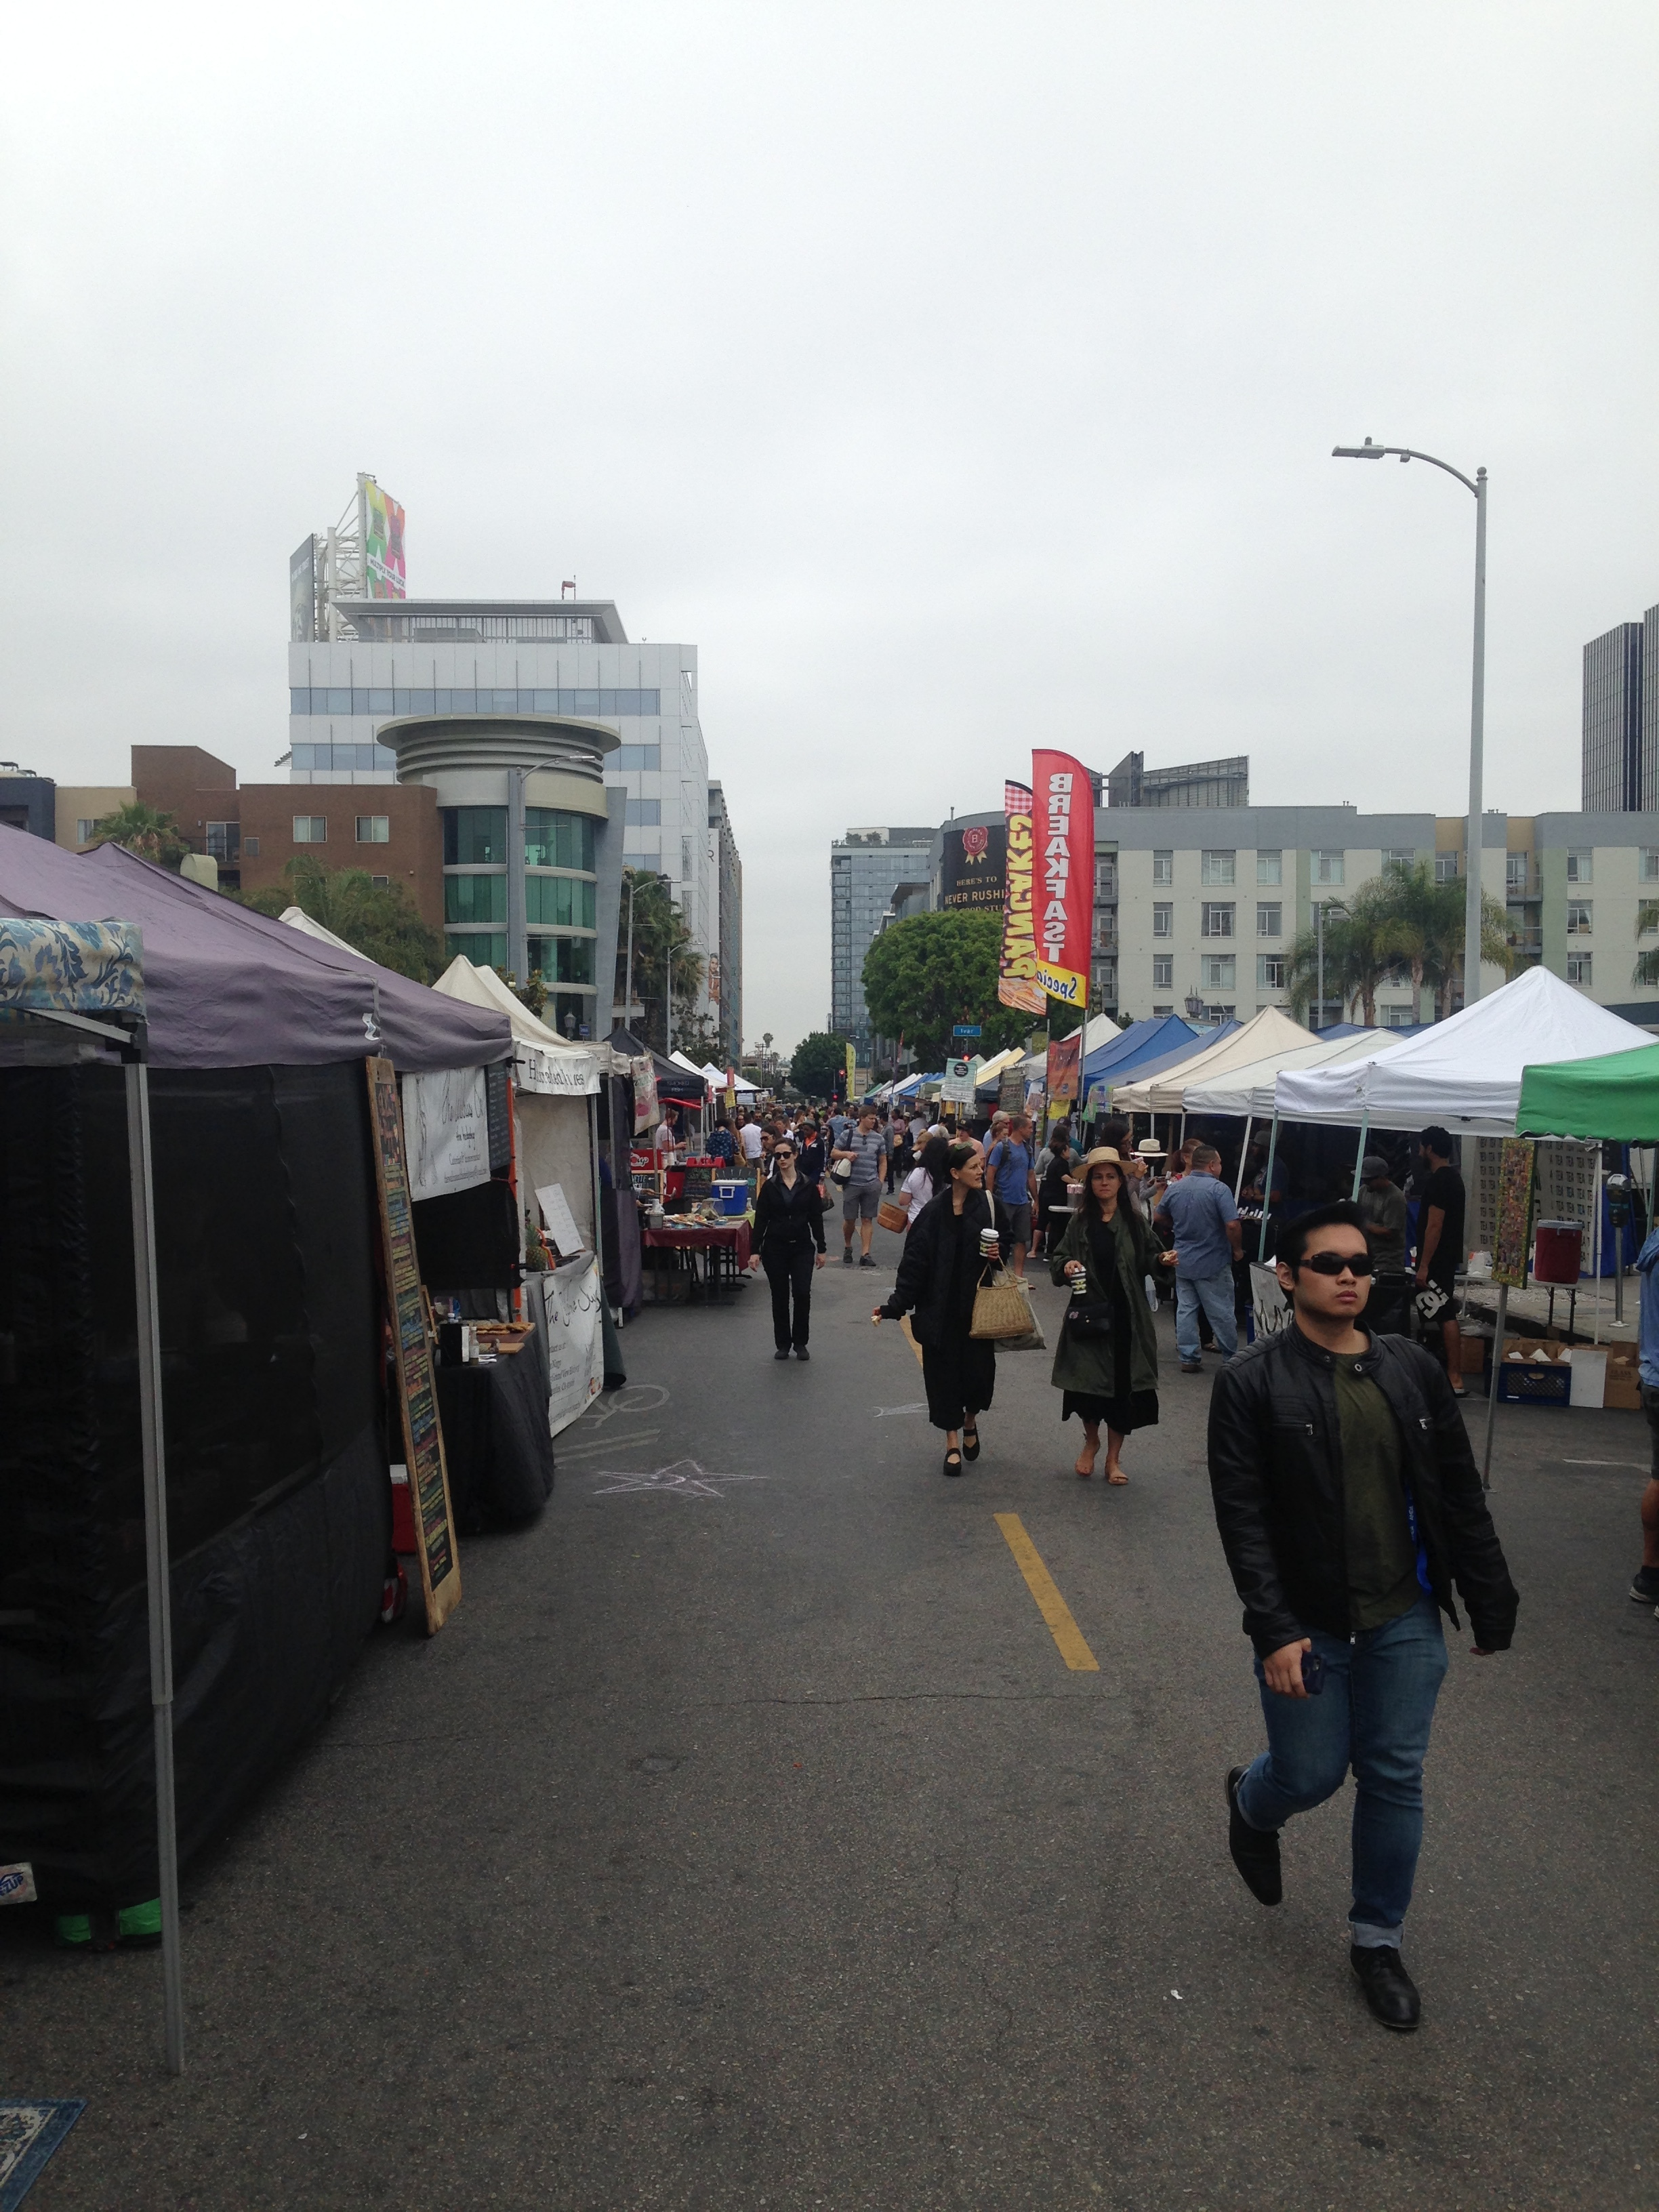 ^ Found the farmers market